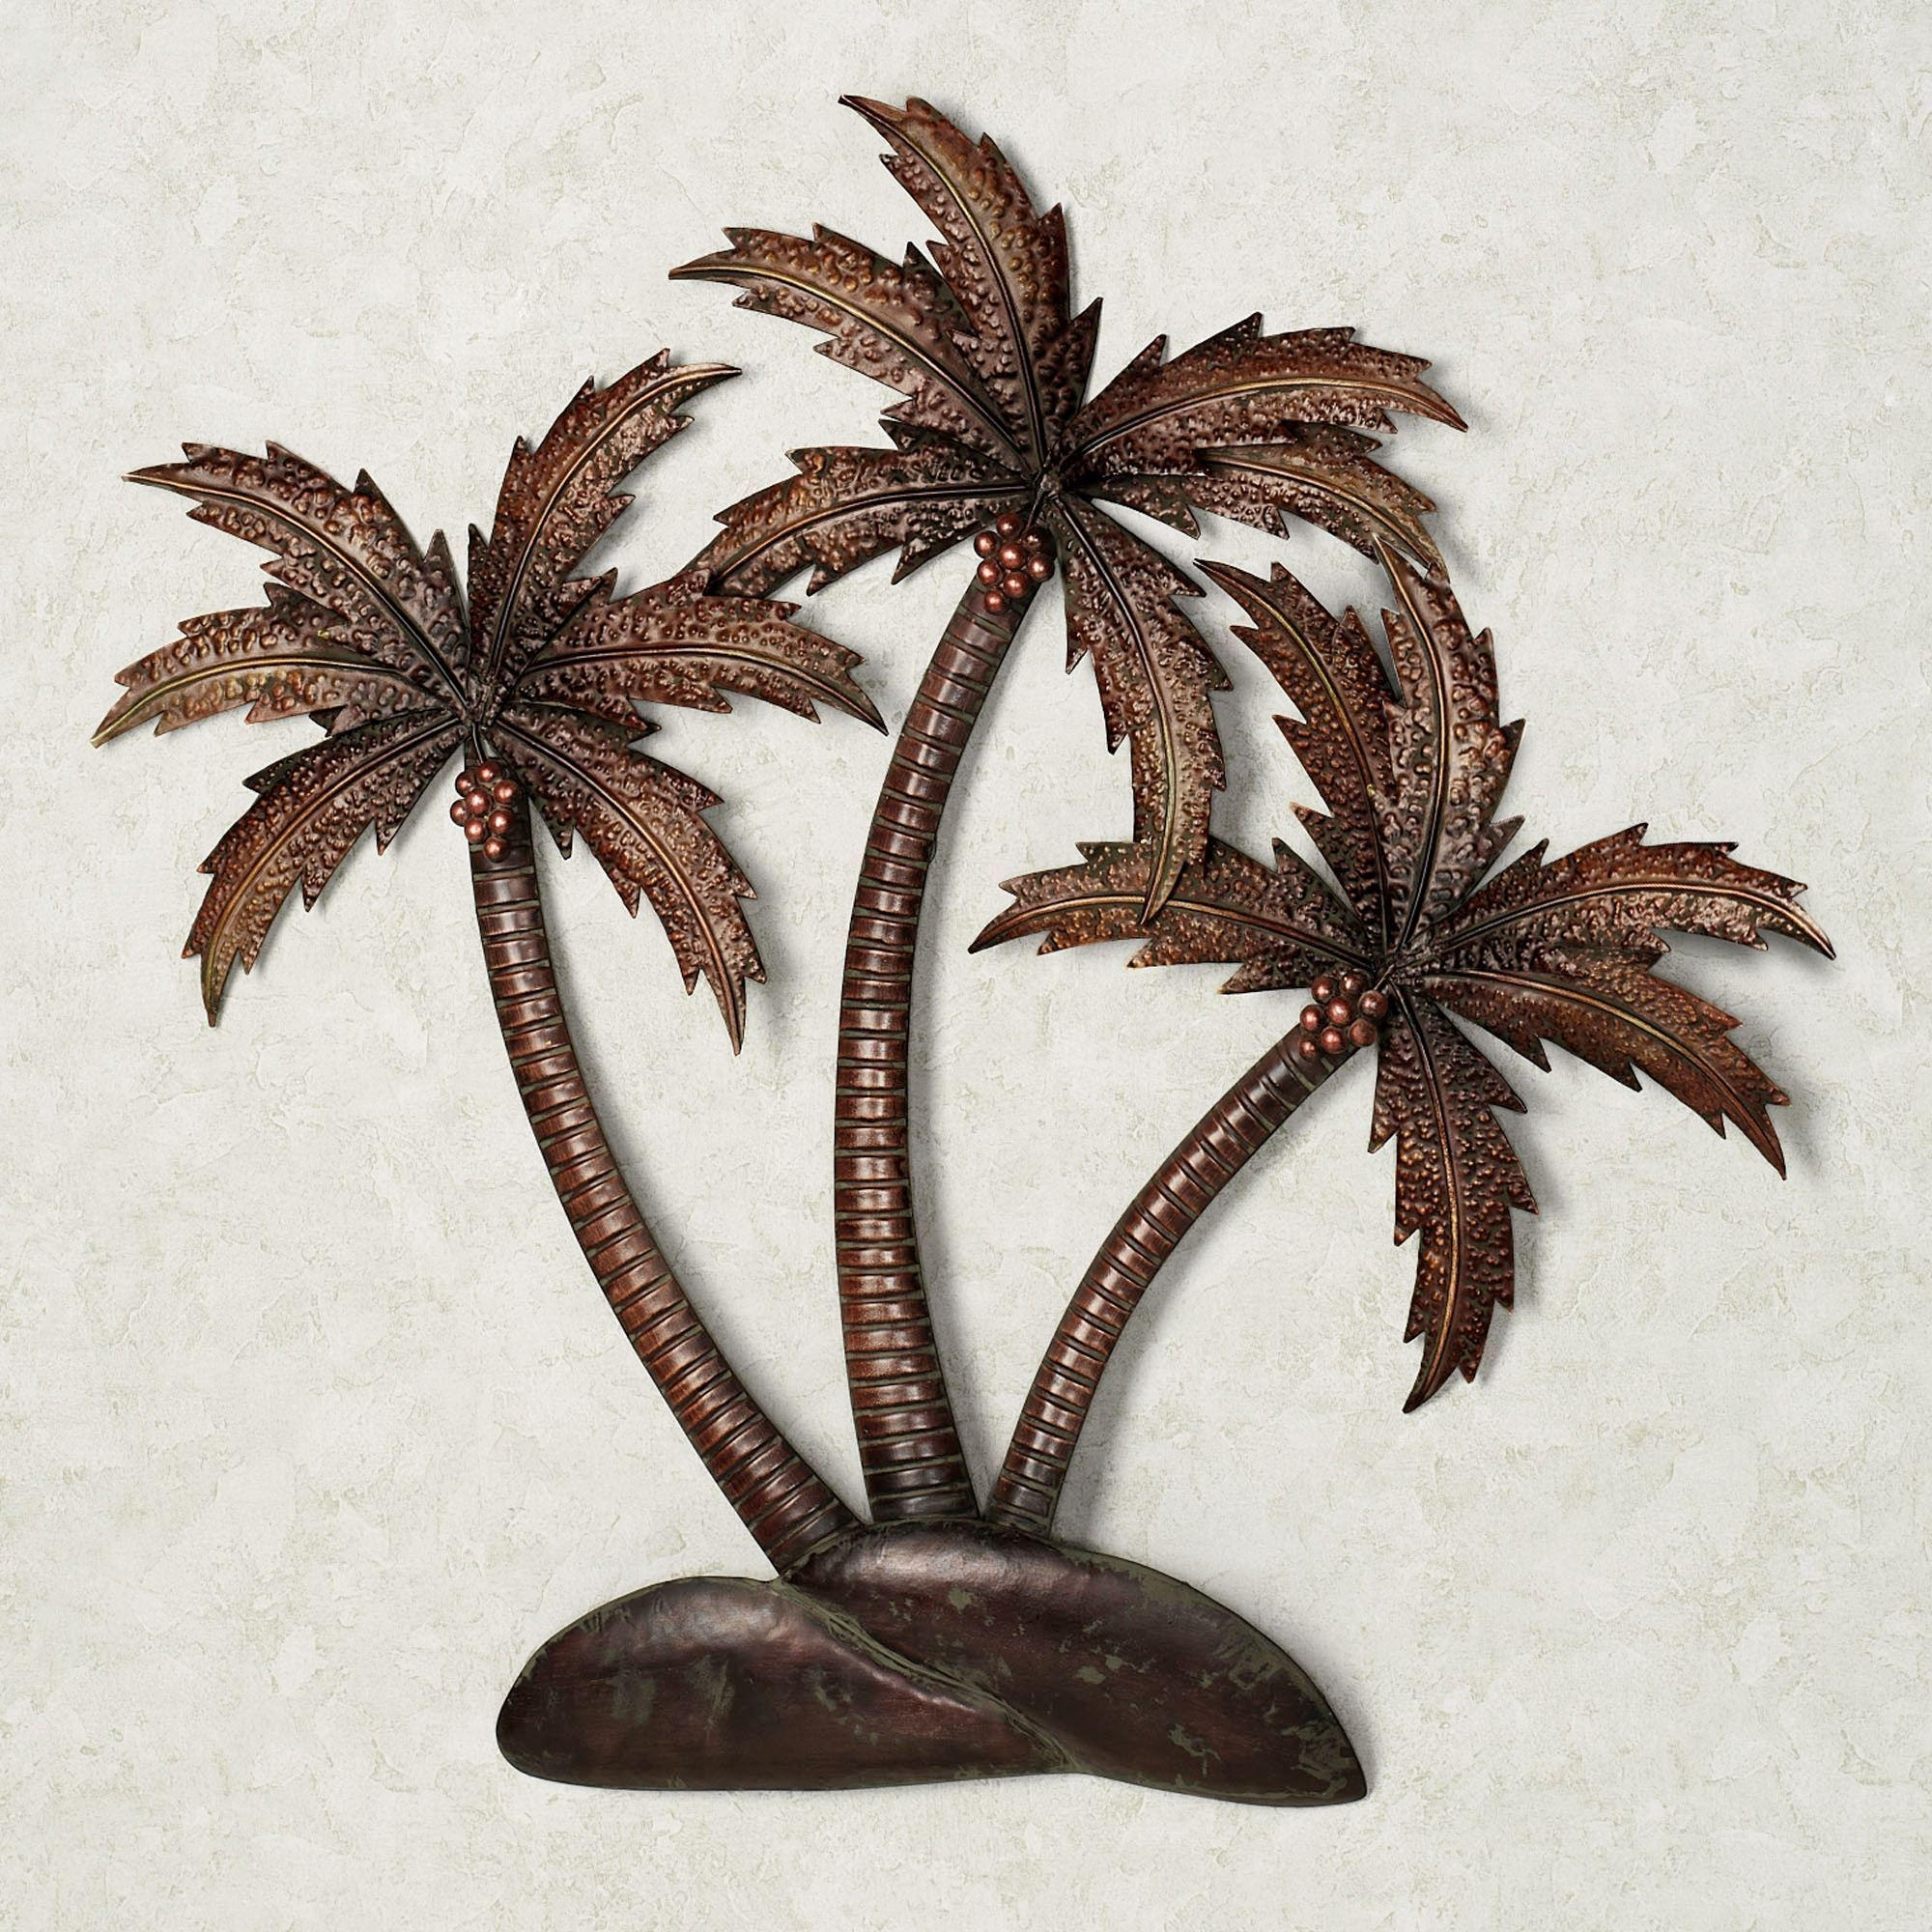 Palmiera Tropical Metal Wall Art Inside Bronze Tree Wall Art (Image 12 of 20)